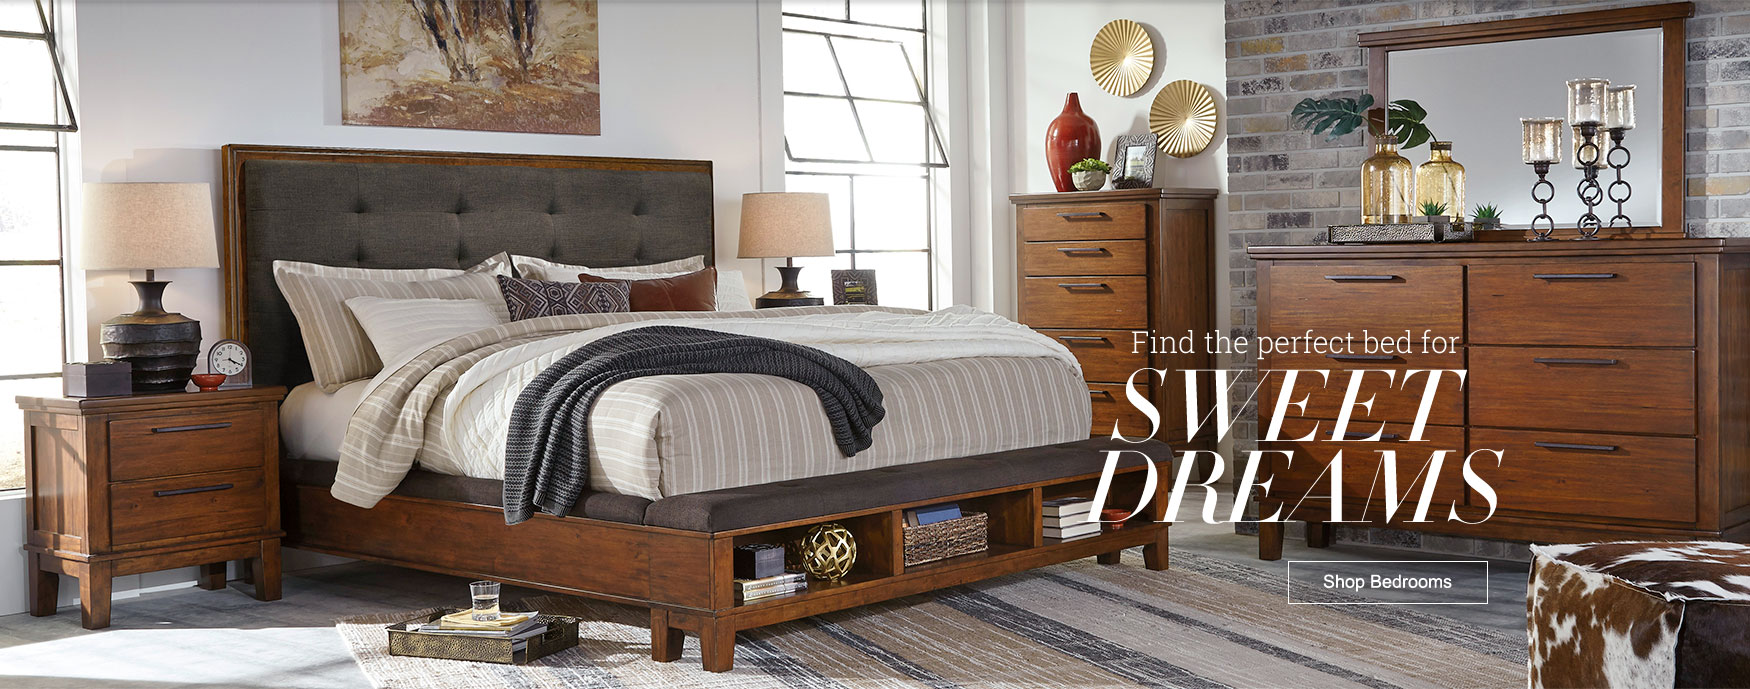 Furniture And Mattress Store With The Best Deals In Spokane Valley